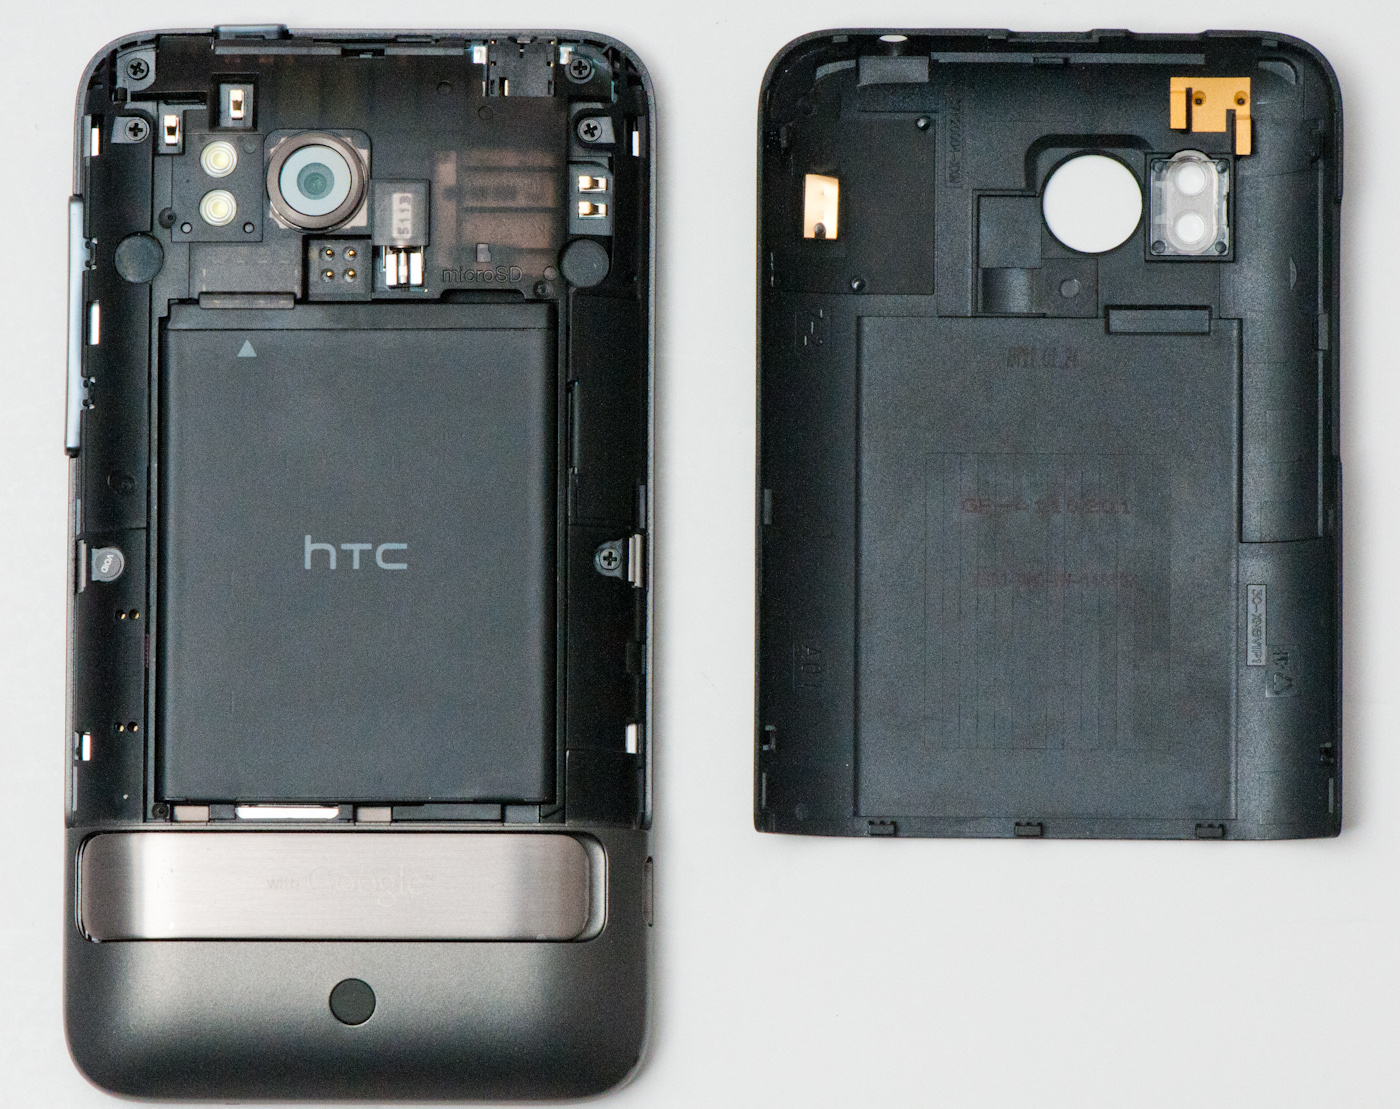 htc thunderbolt. htc thunderbolt review: the first verizon 4g lte smartphone htc